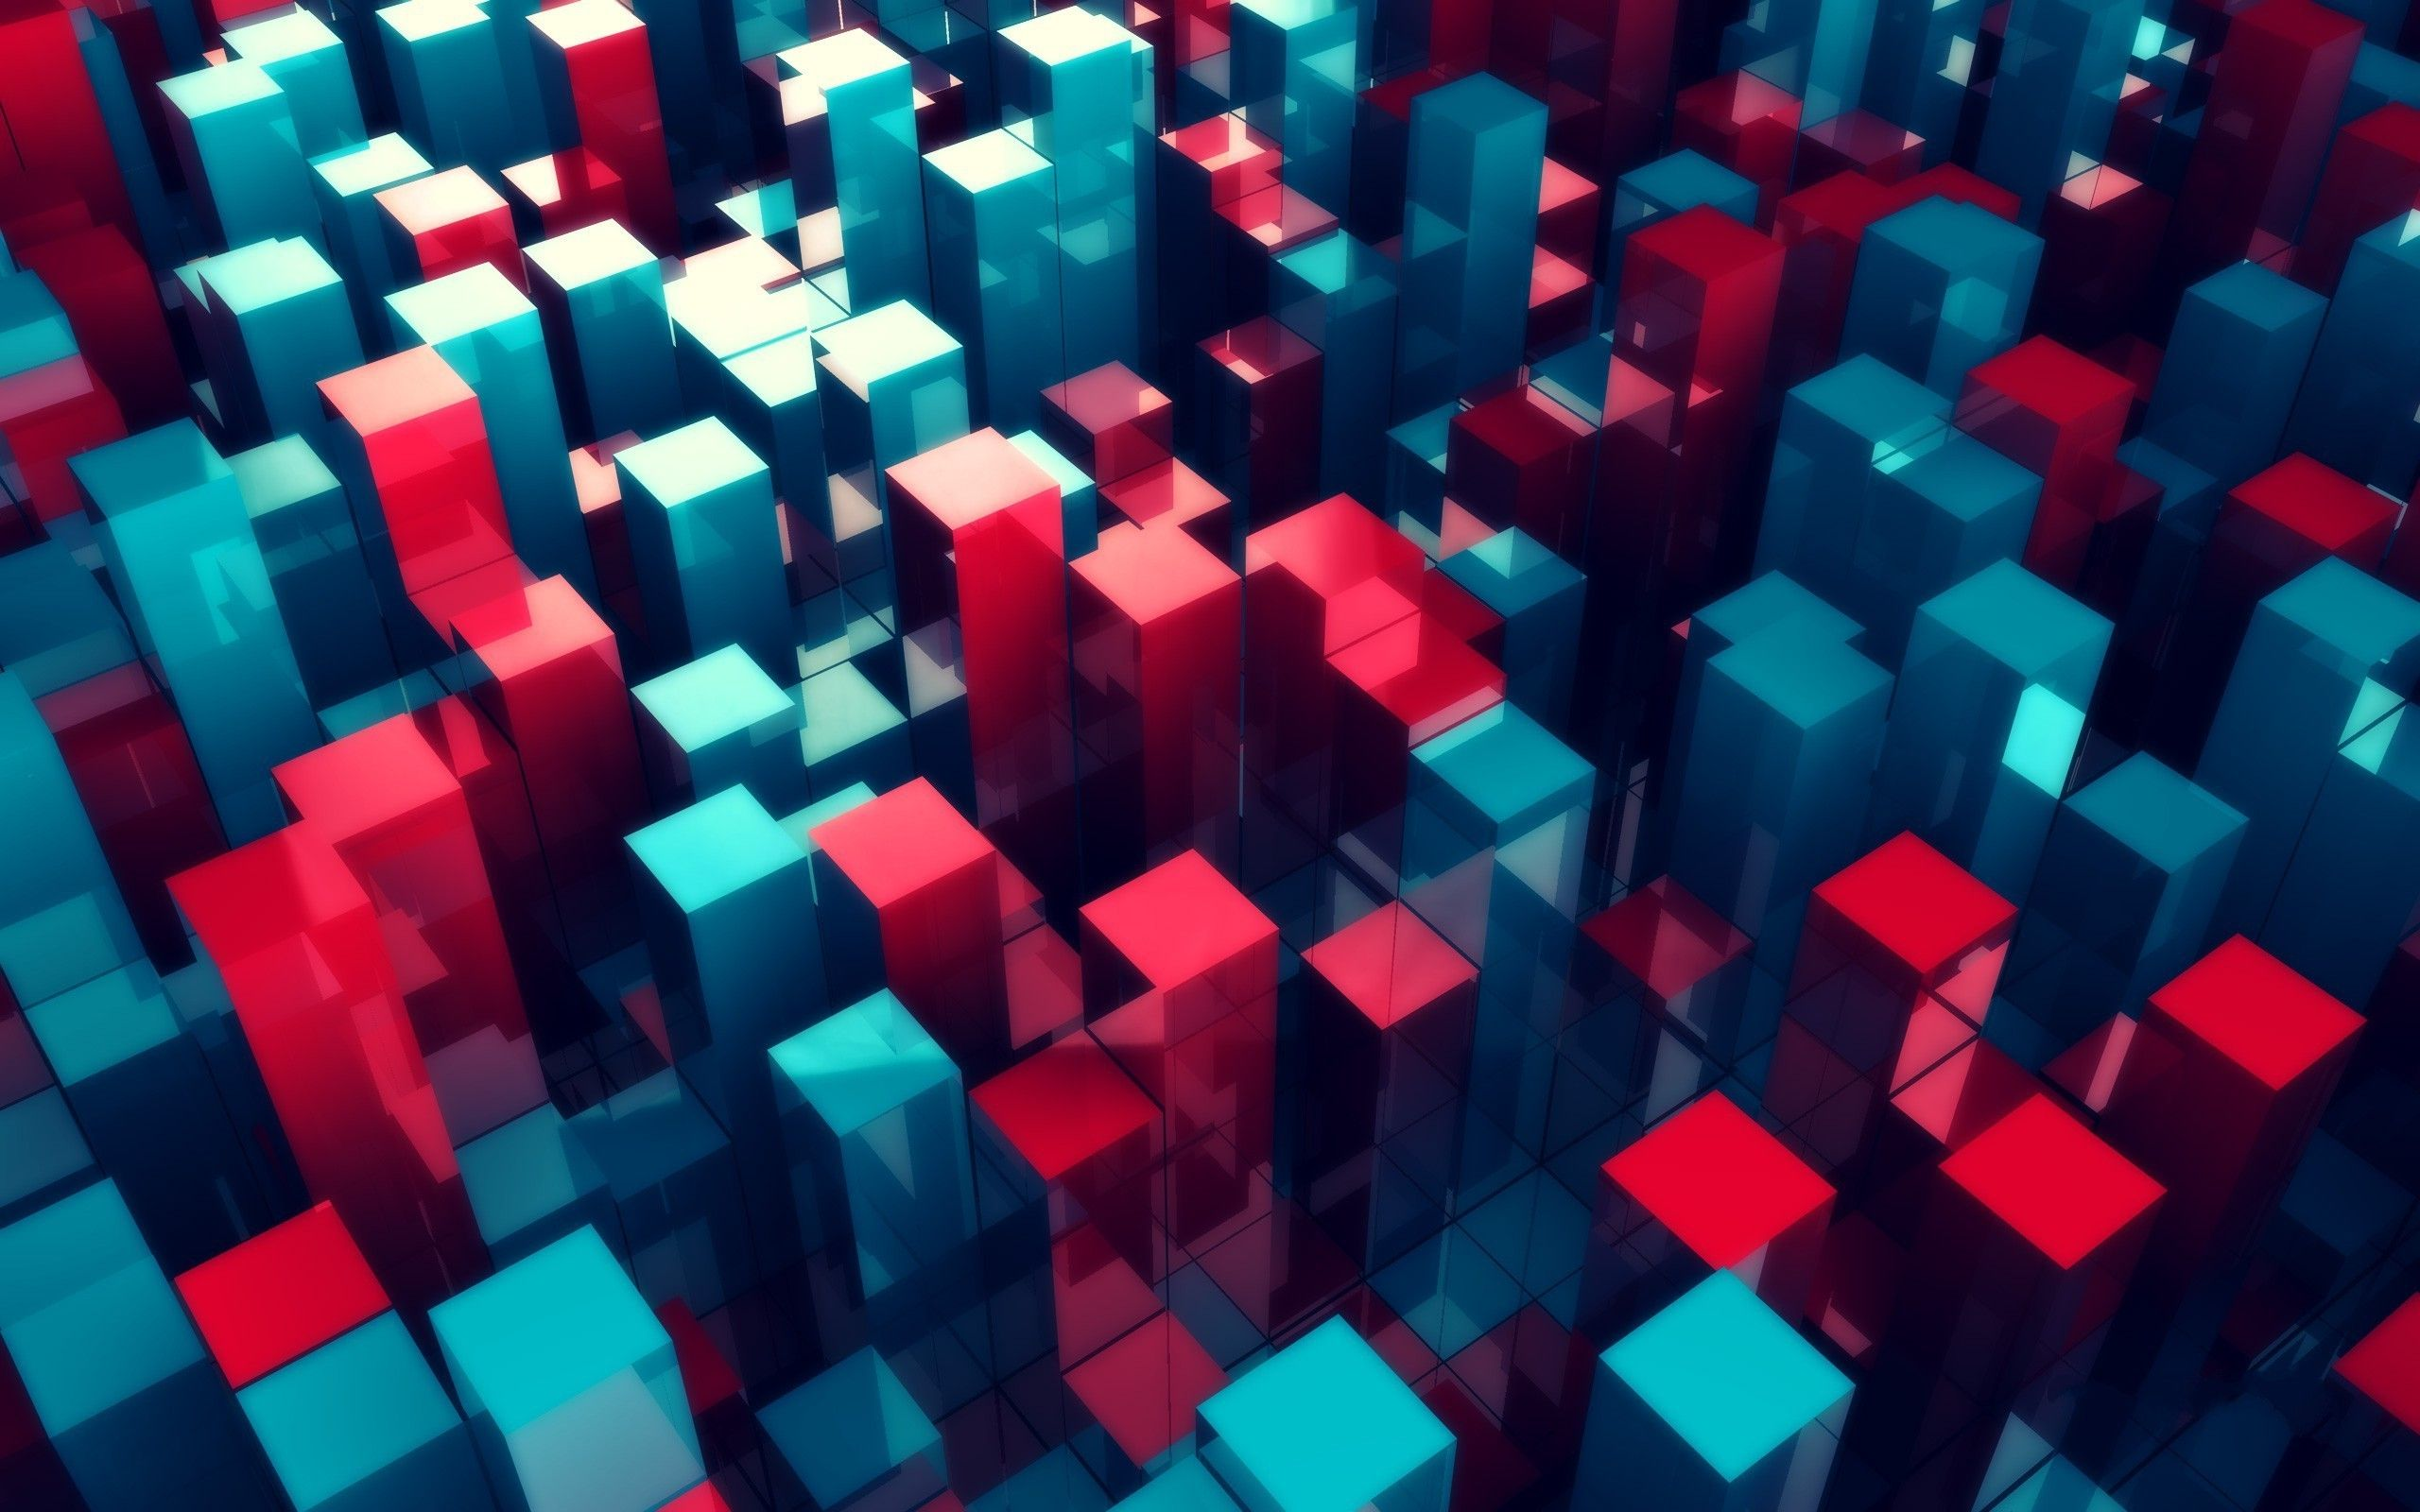 Abstract Cube Wallpapers Top Free Abstract Cube